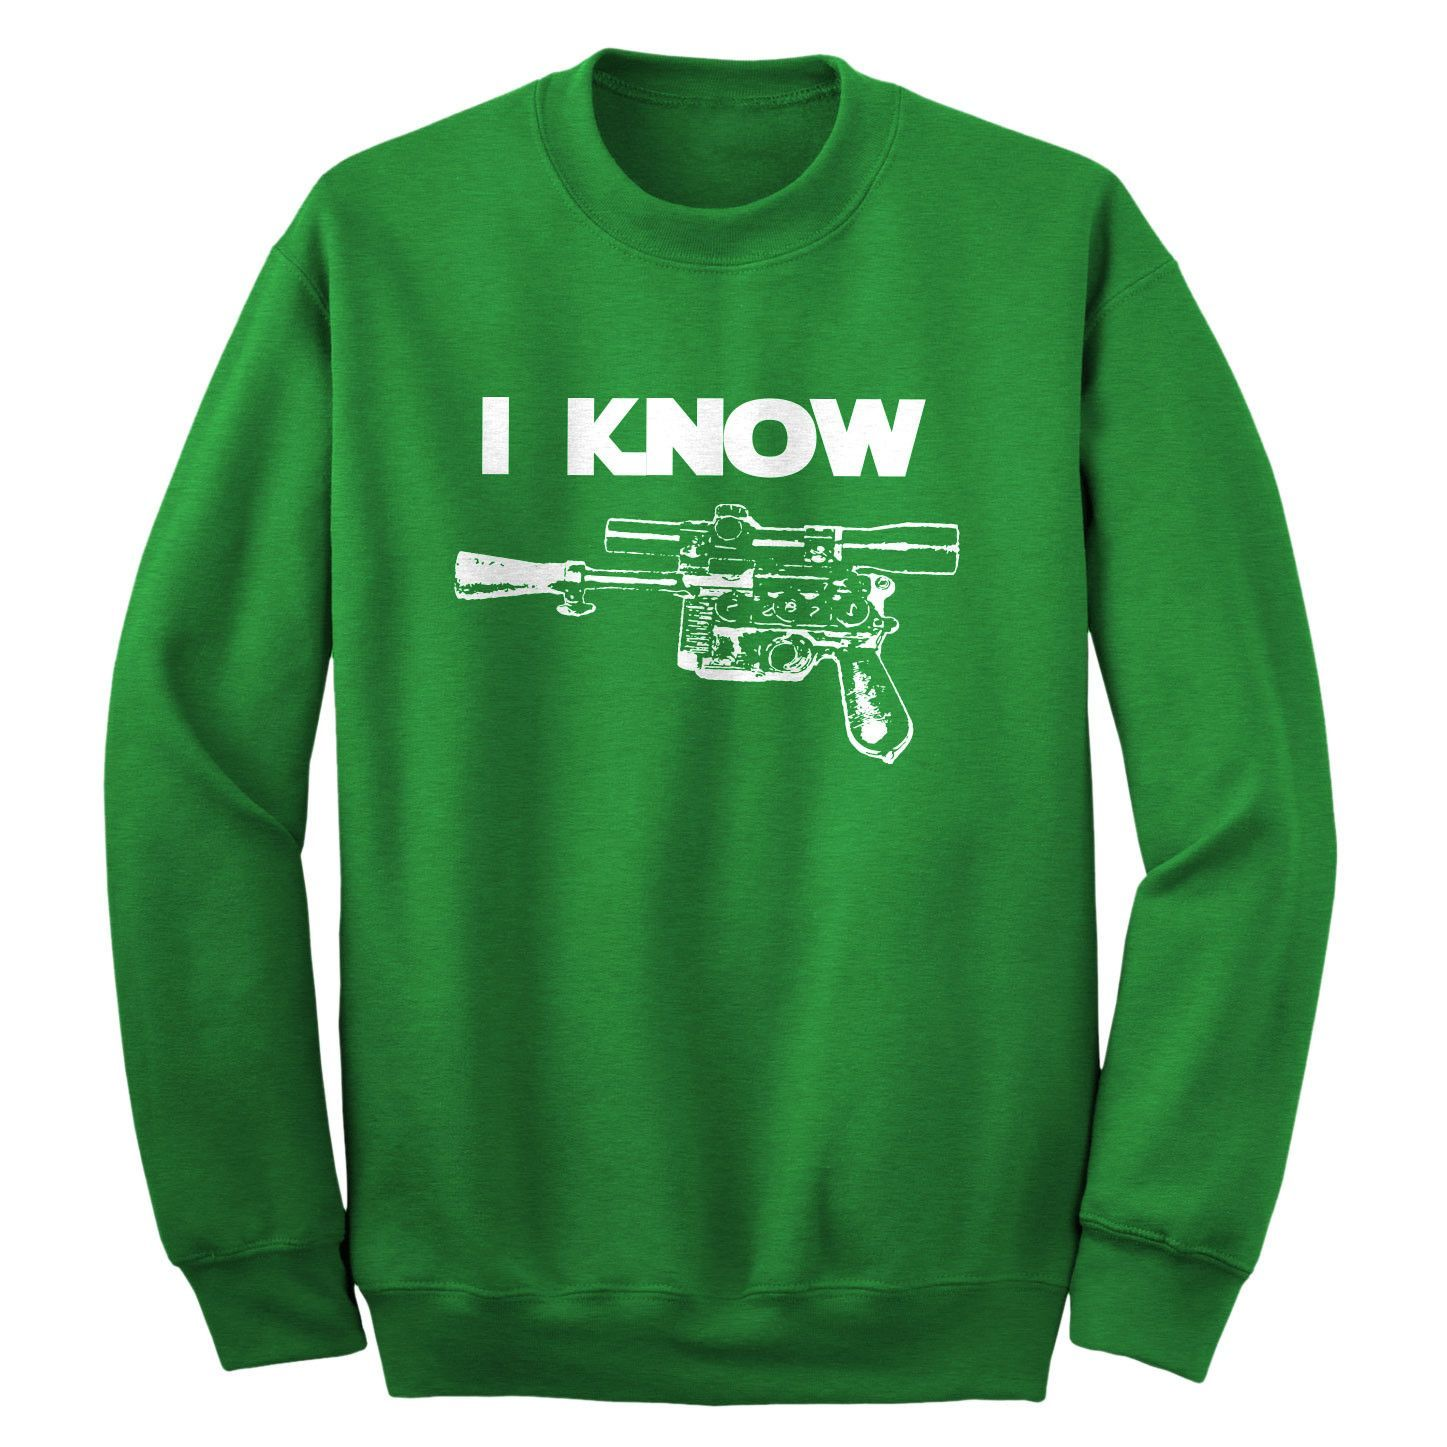 I Know Adult Crewneck Sweatshirt